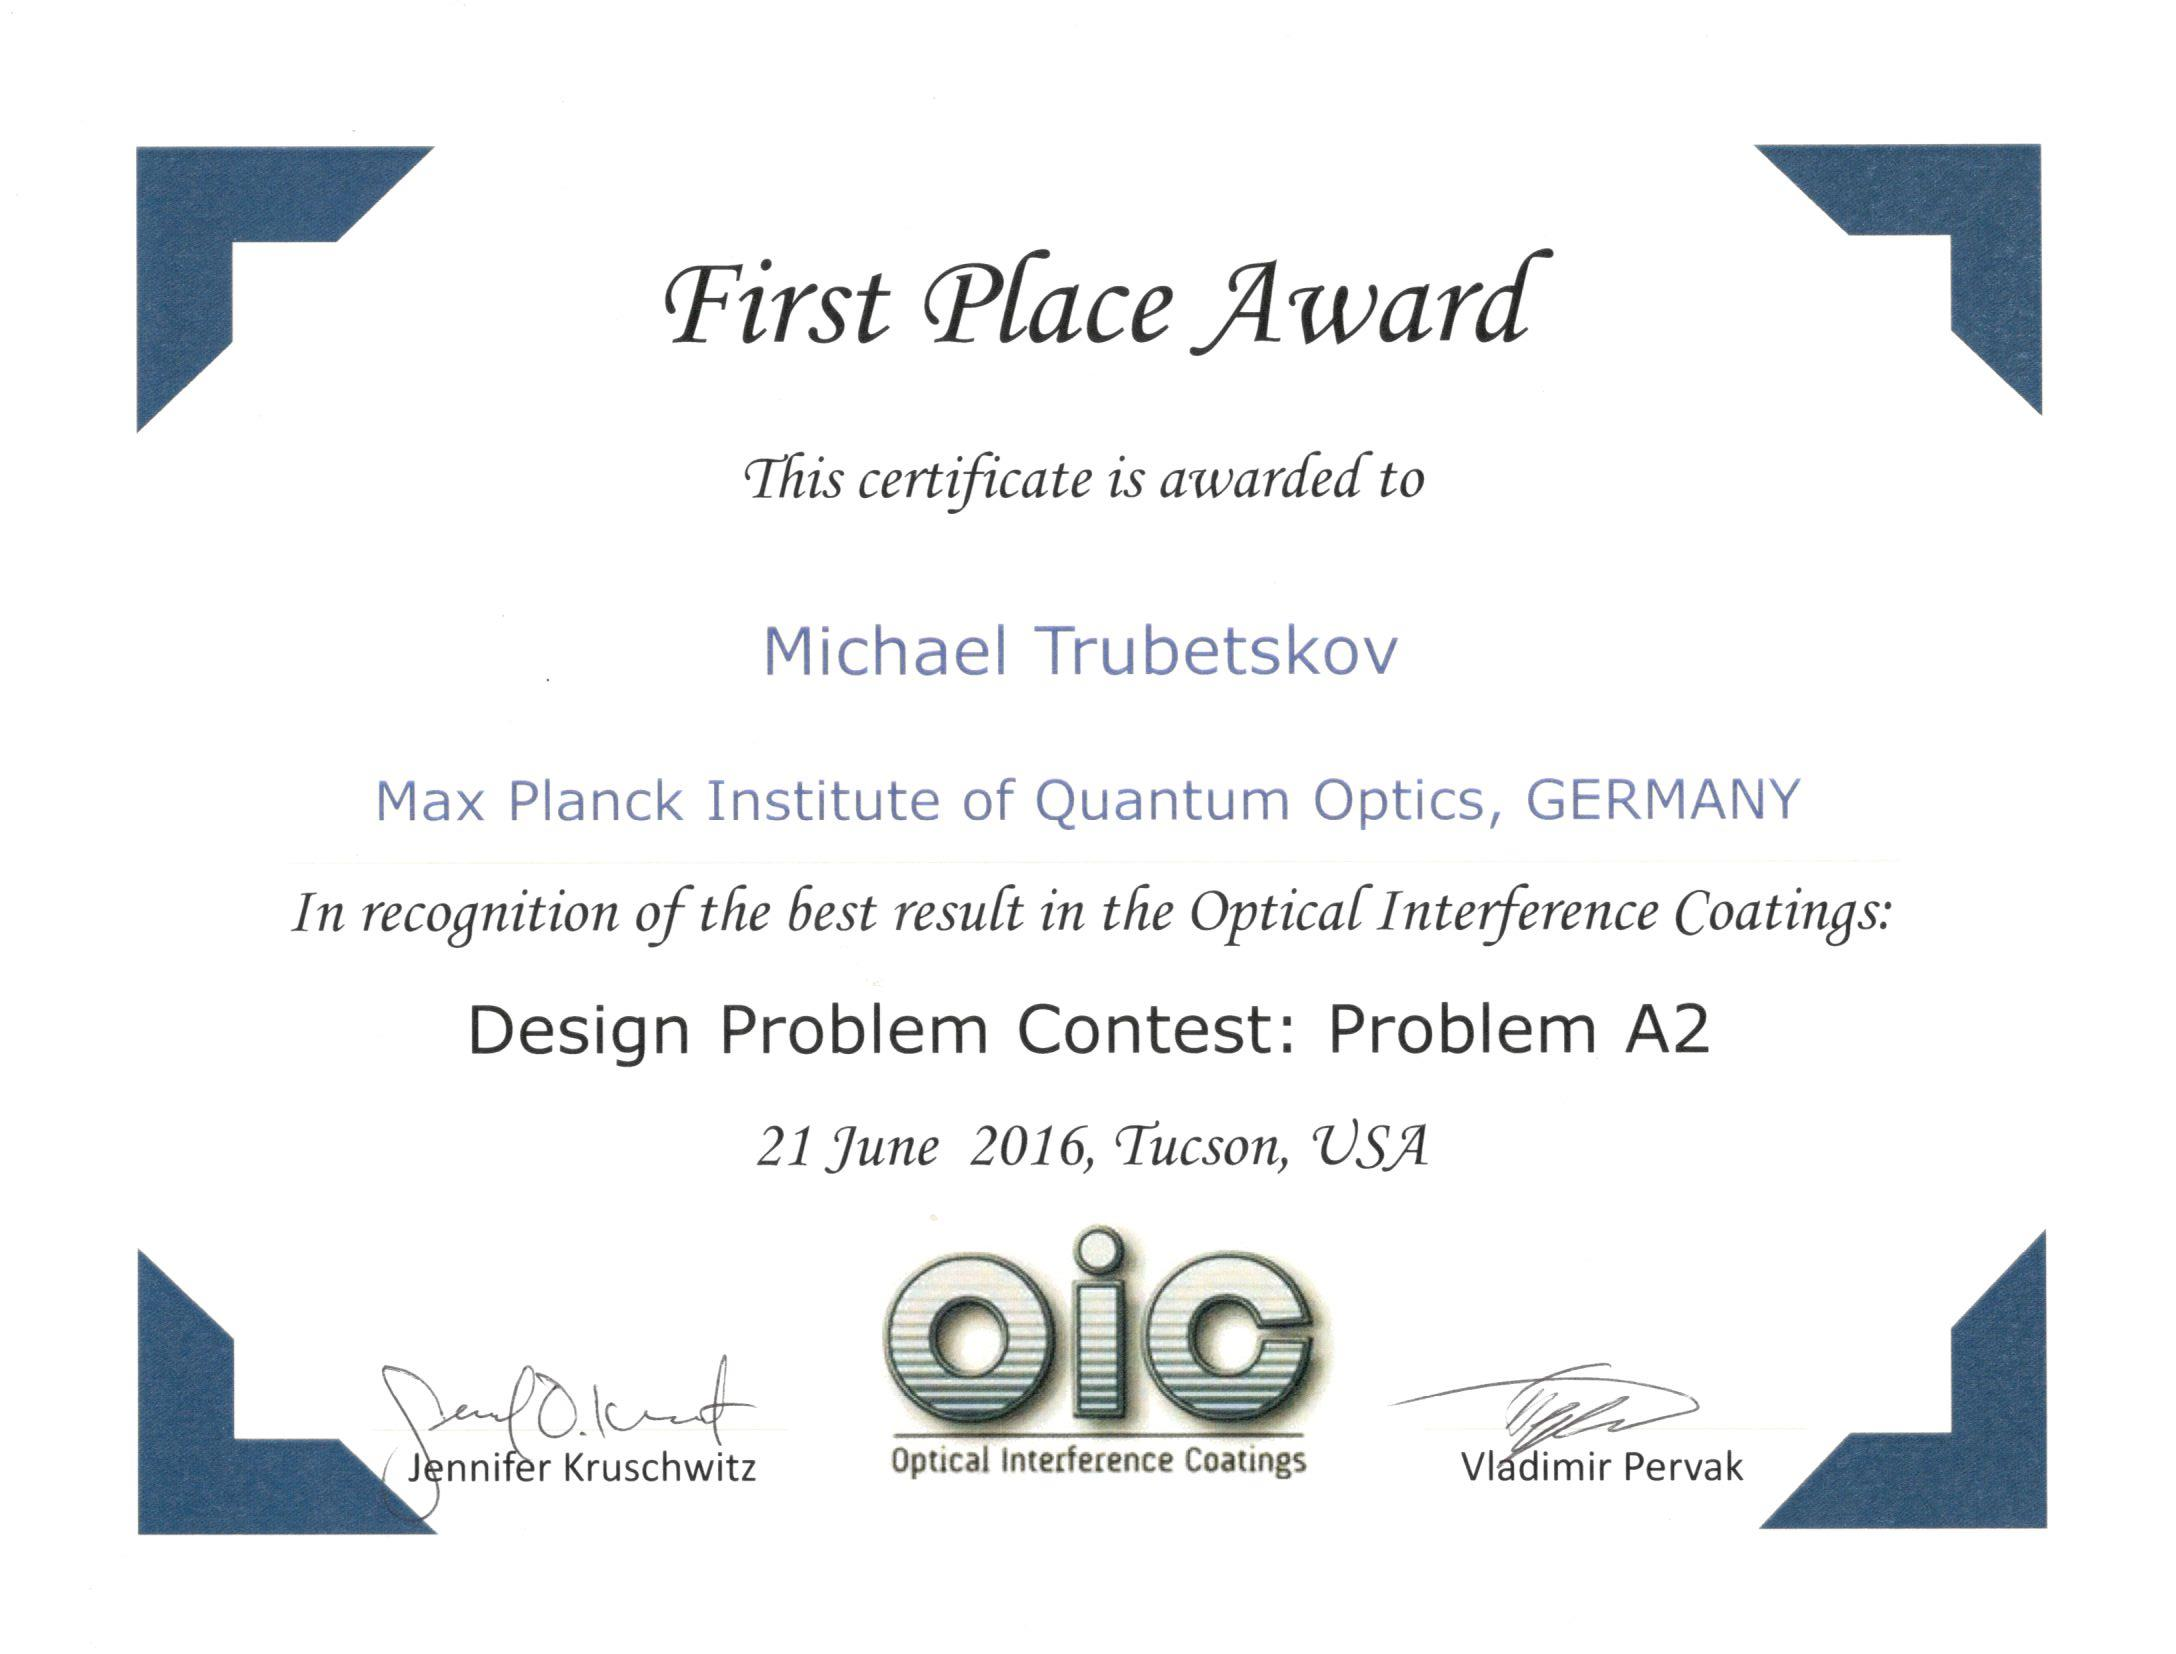 OIC design contest